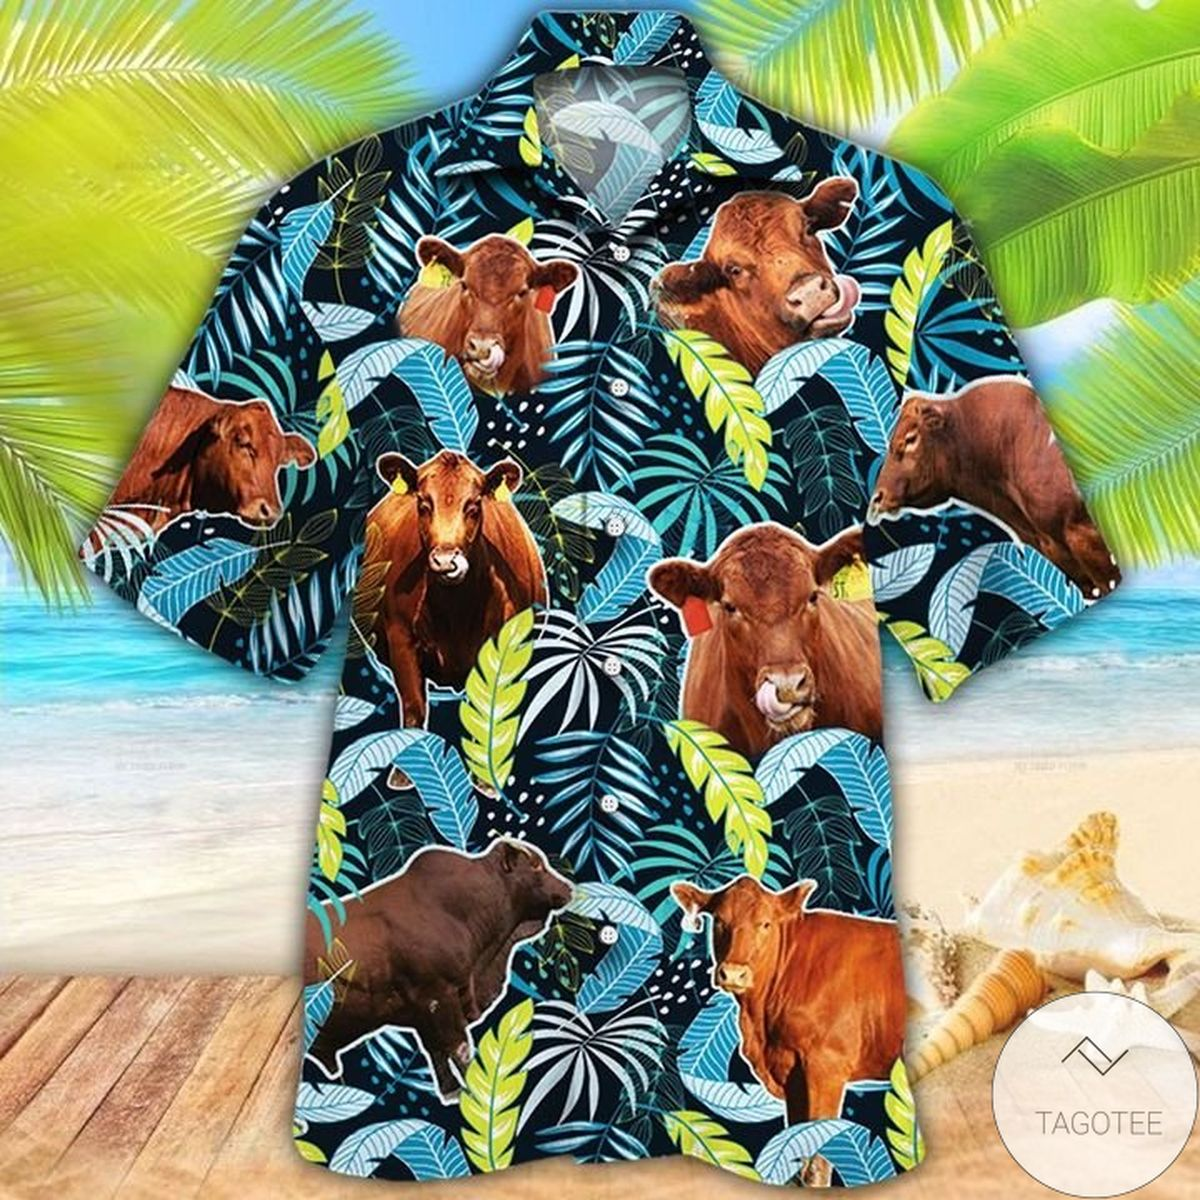 Adorable Red Angus Cattle Lovers Jungle Leaves Hawaiian Shirt